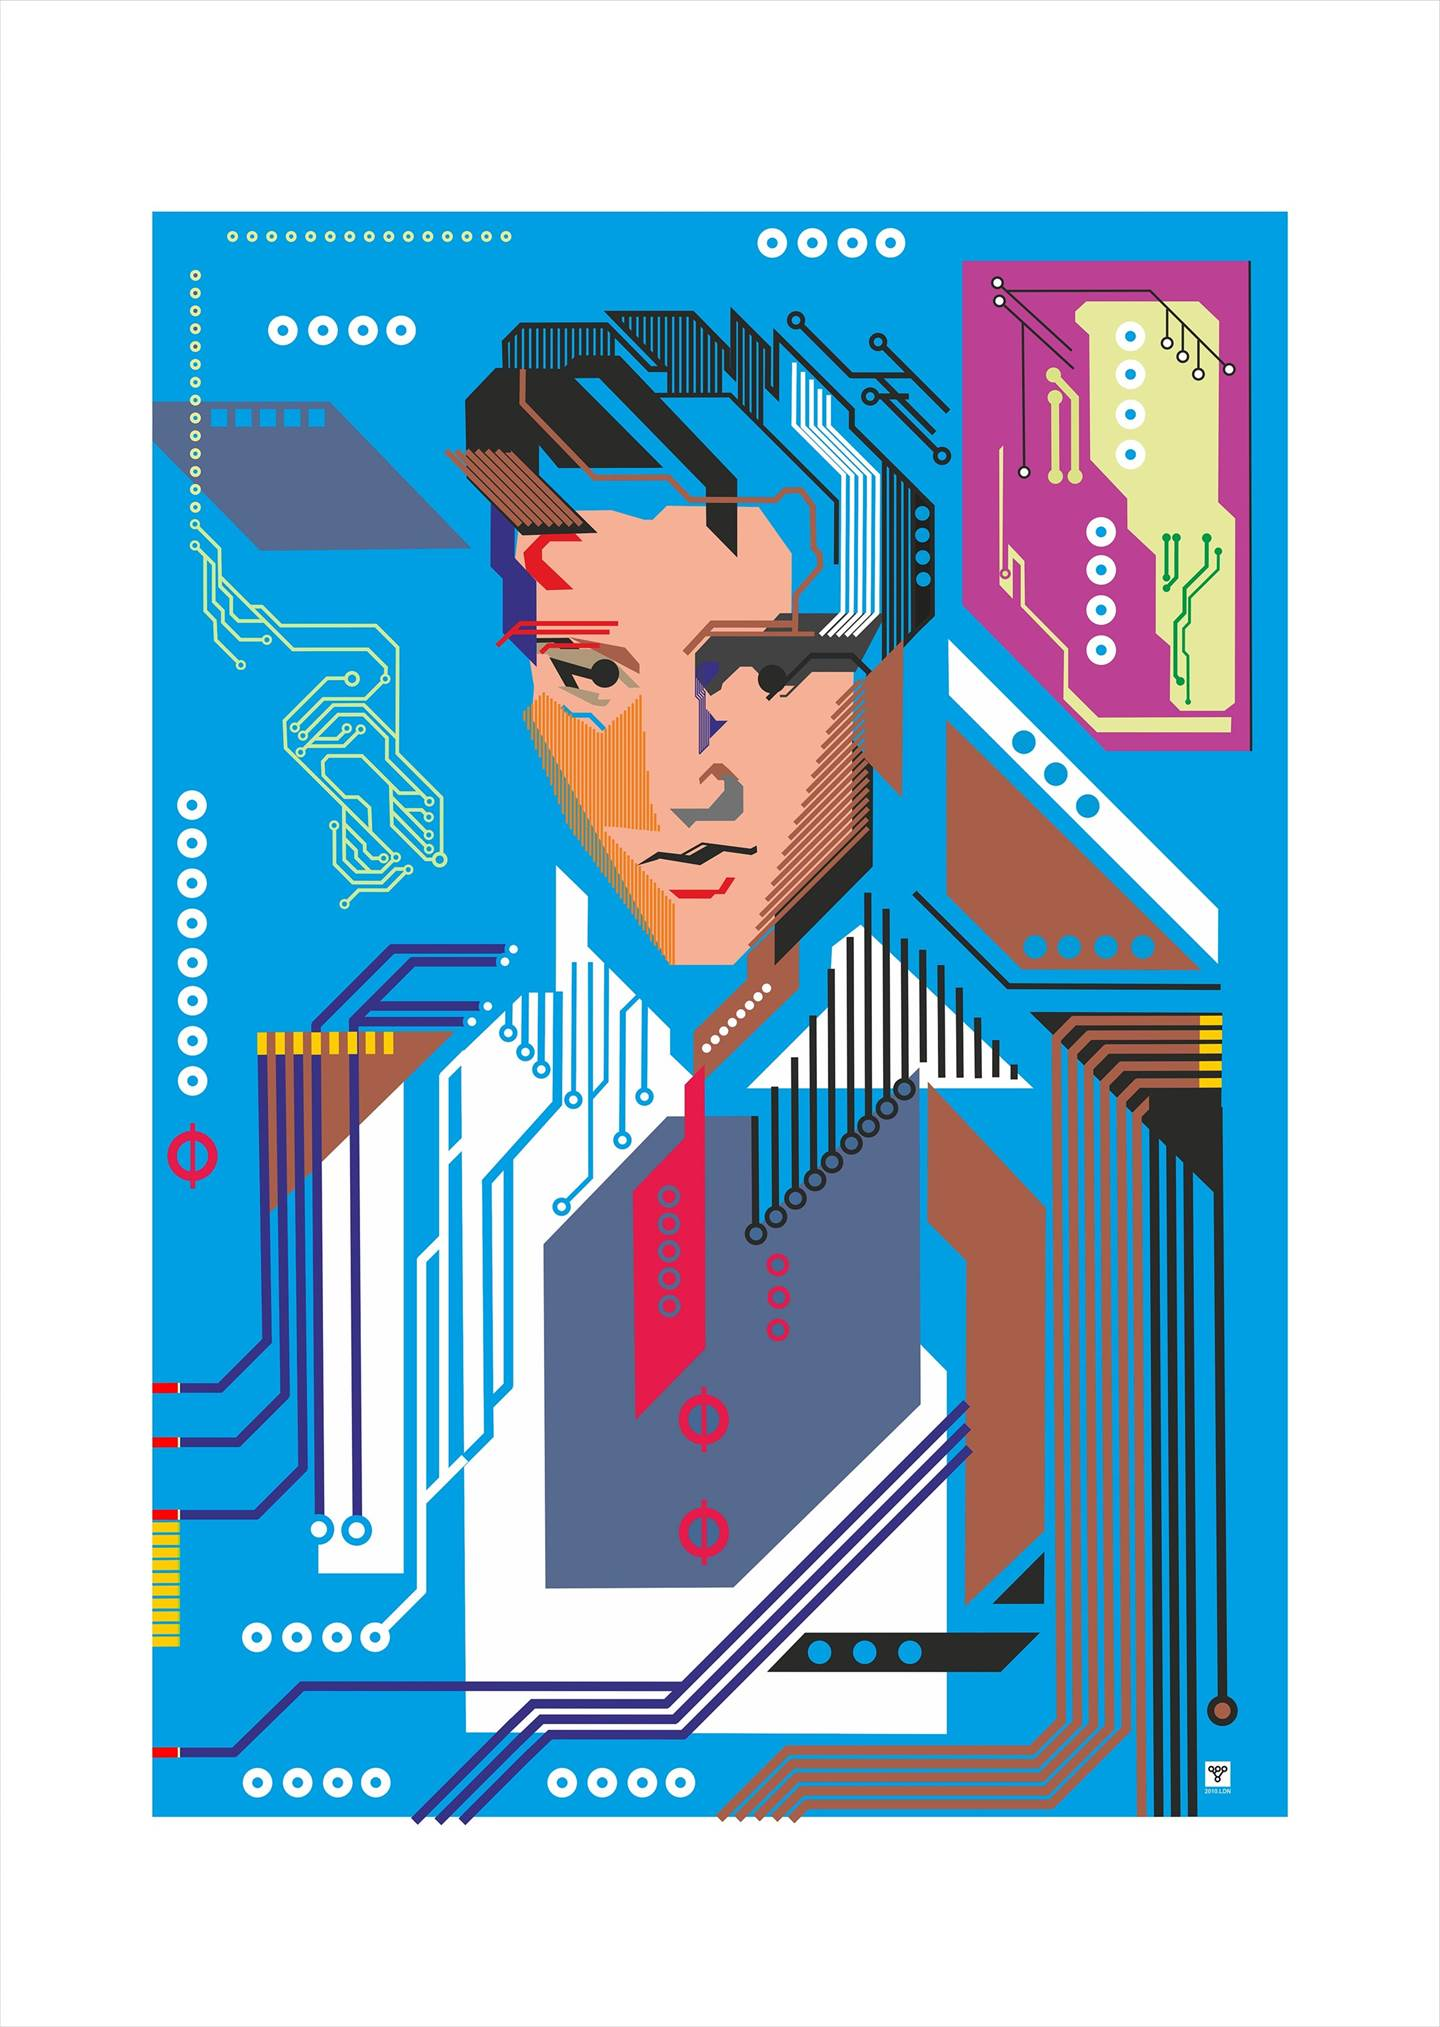 Elvis Presley, digital portrait, original Geometric Digital Drawing and Illustration by Vitaly (VITALIV) Vinogradov